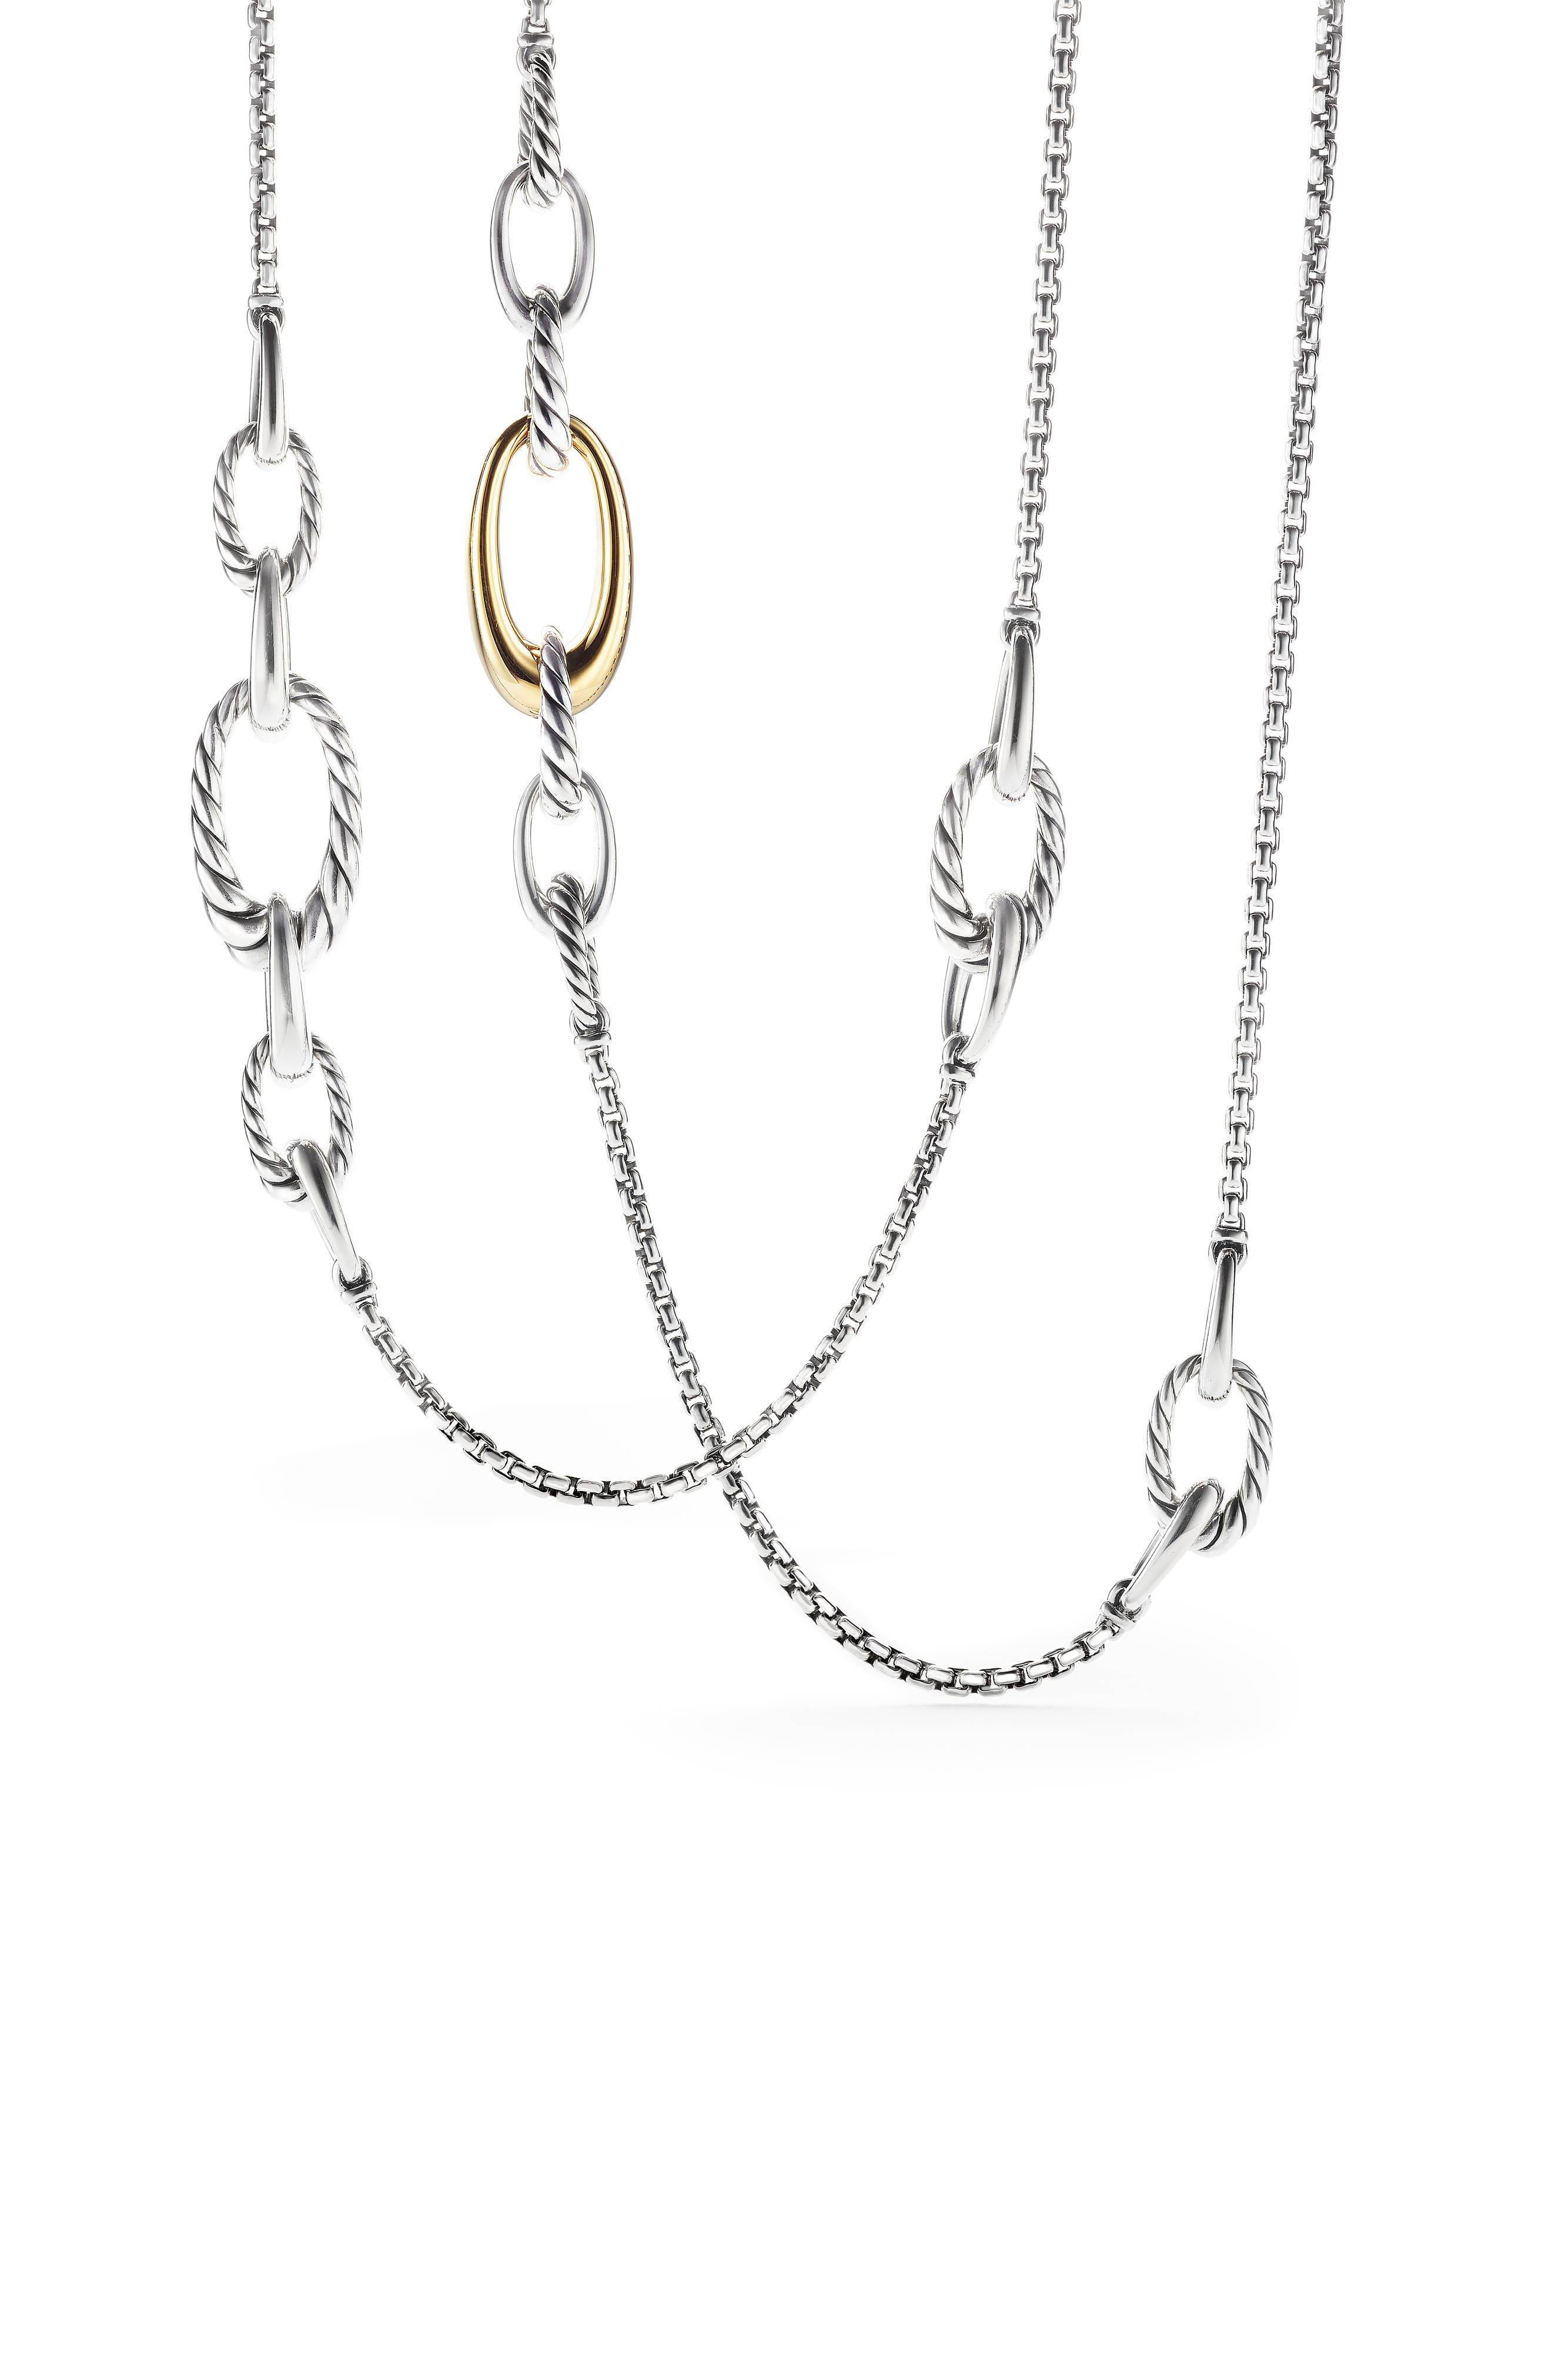 Pure Form Graduated Chain Station Necklace,                             Alternate thumbnail 2, color,                             GOLD/ SILVER